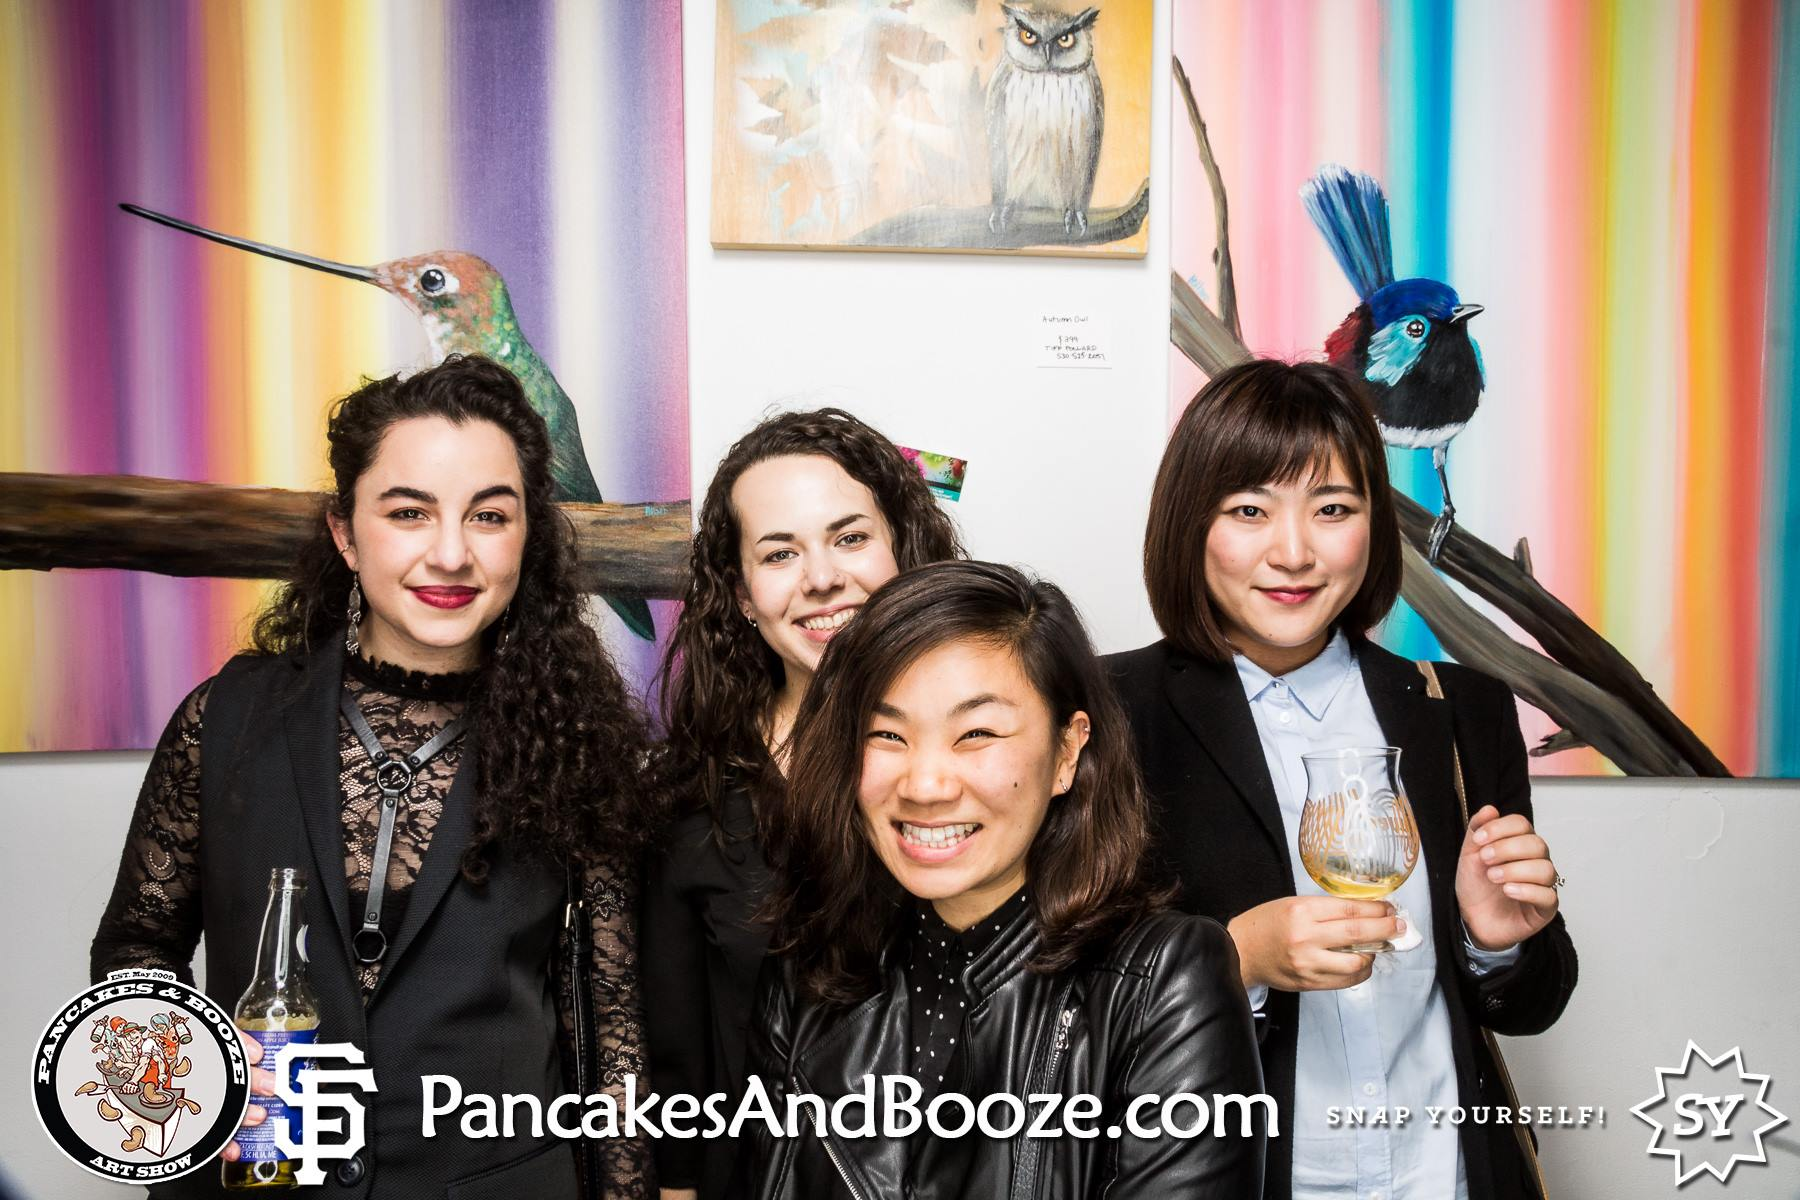 Pancakes & Booze Art Show January 2016 SF - Sabrina Brett